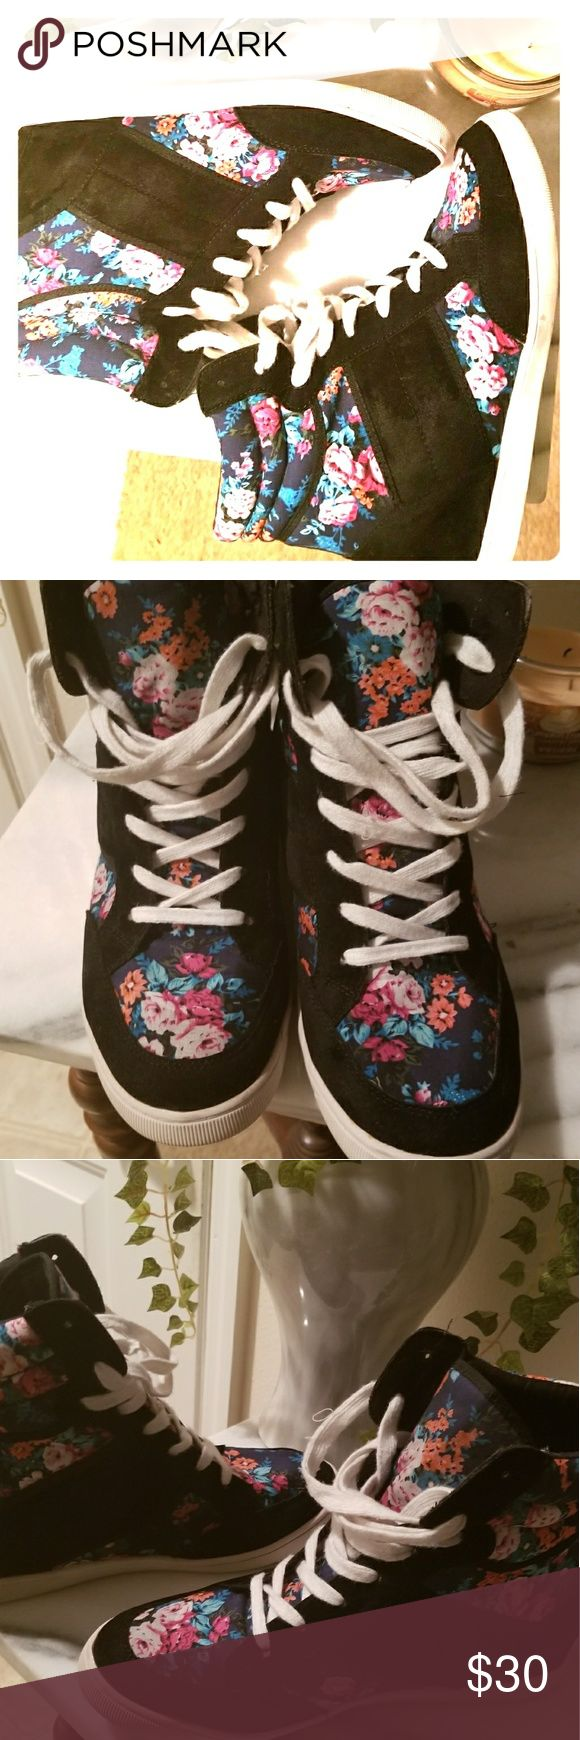 Shoedazzle Wedge Sneaker Floral Print & Suede Super cute size 11w hidden heel sneakers by Shoedazzle. Black faux suede and floral print. White sole has some bruises as seen in photos. Great condition otherwise! Shoe Dazzle Shoes Sneakers